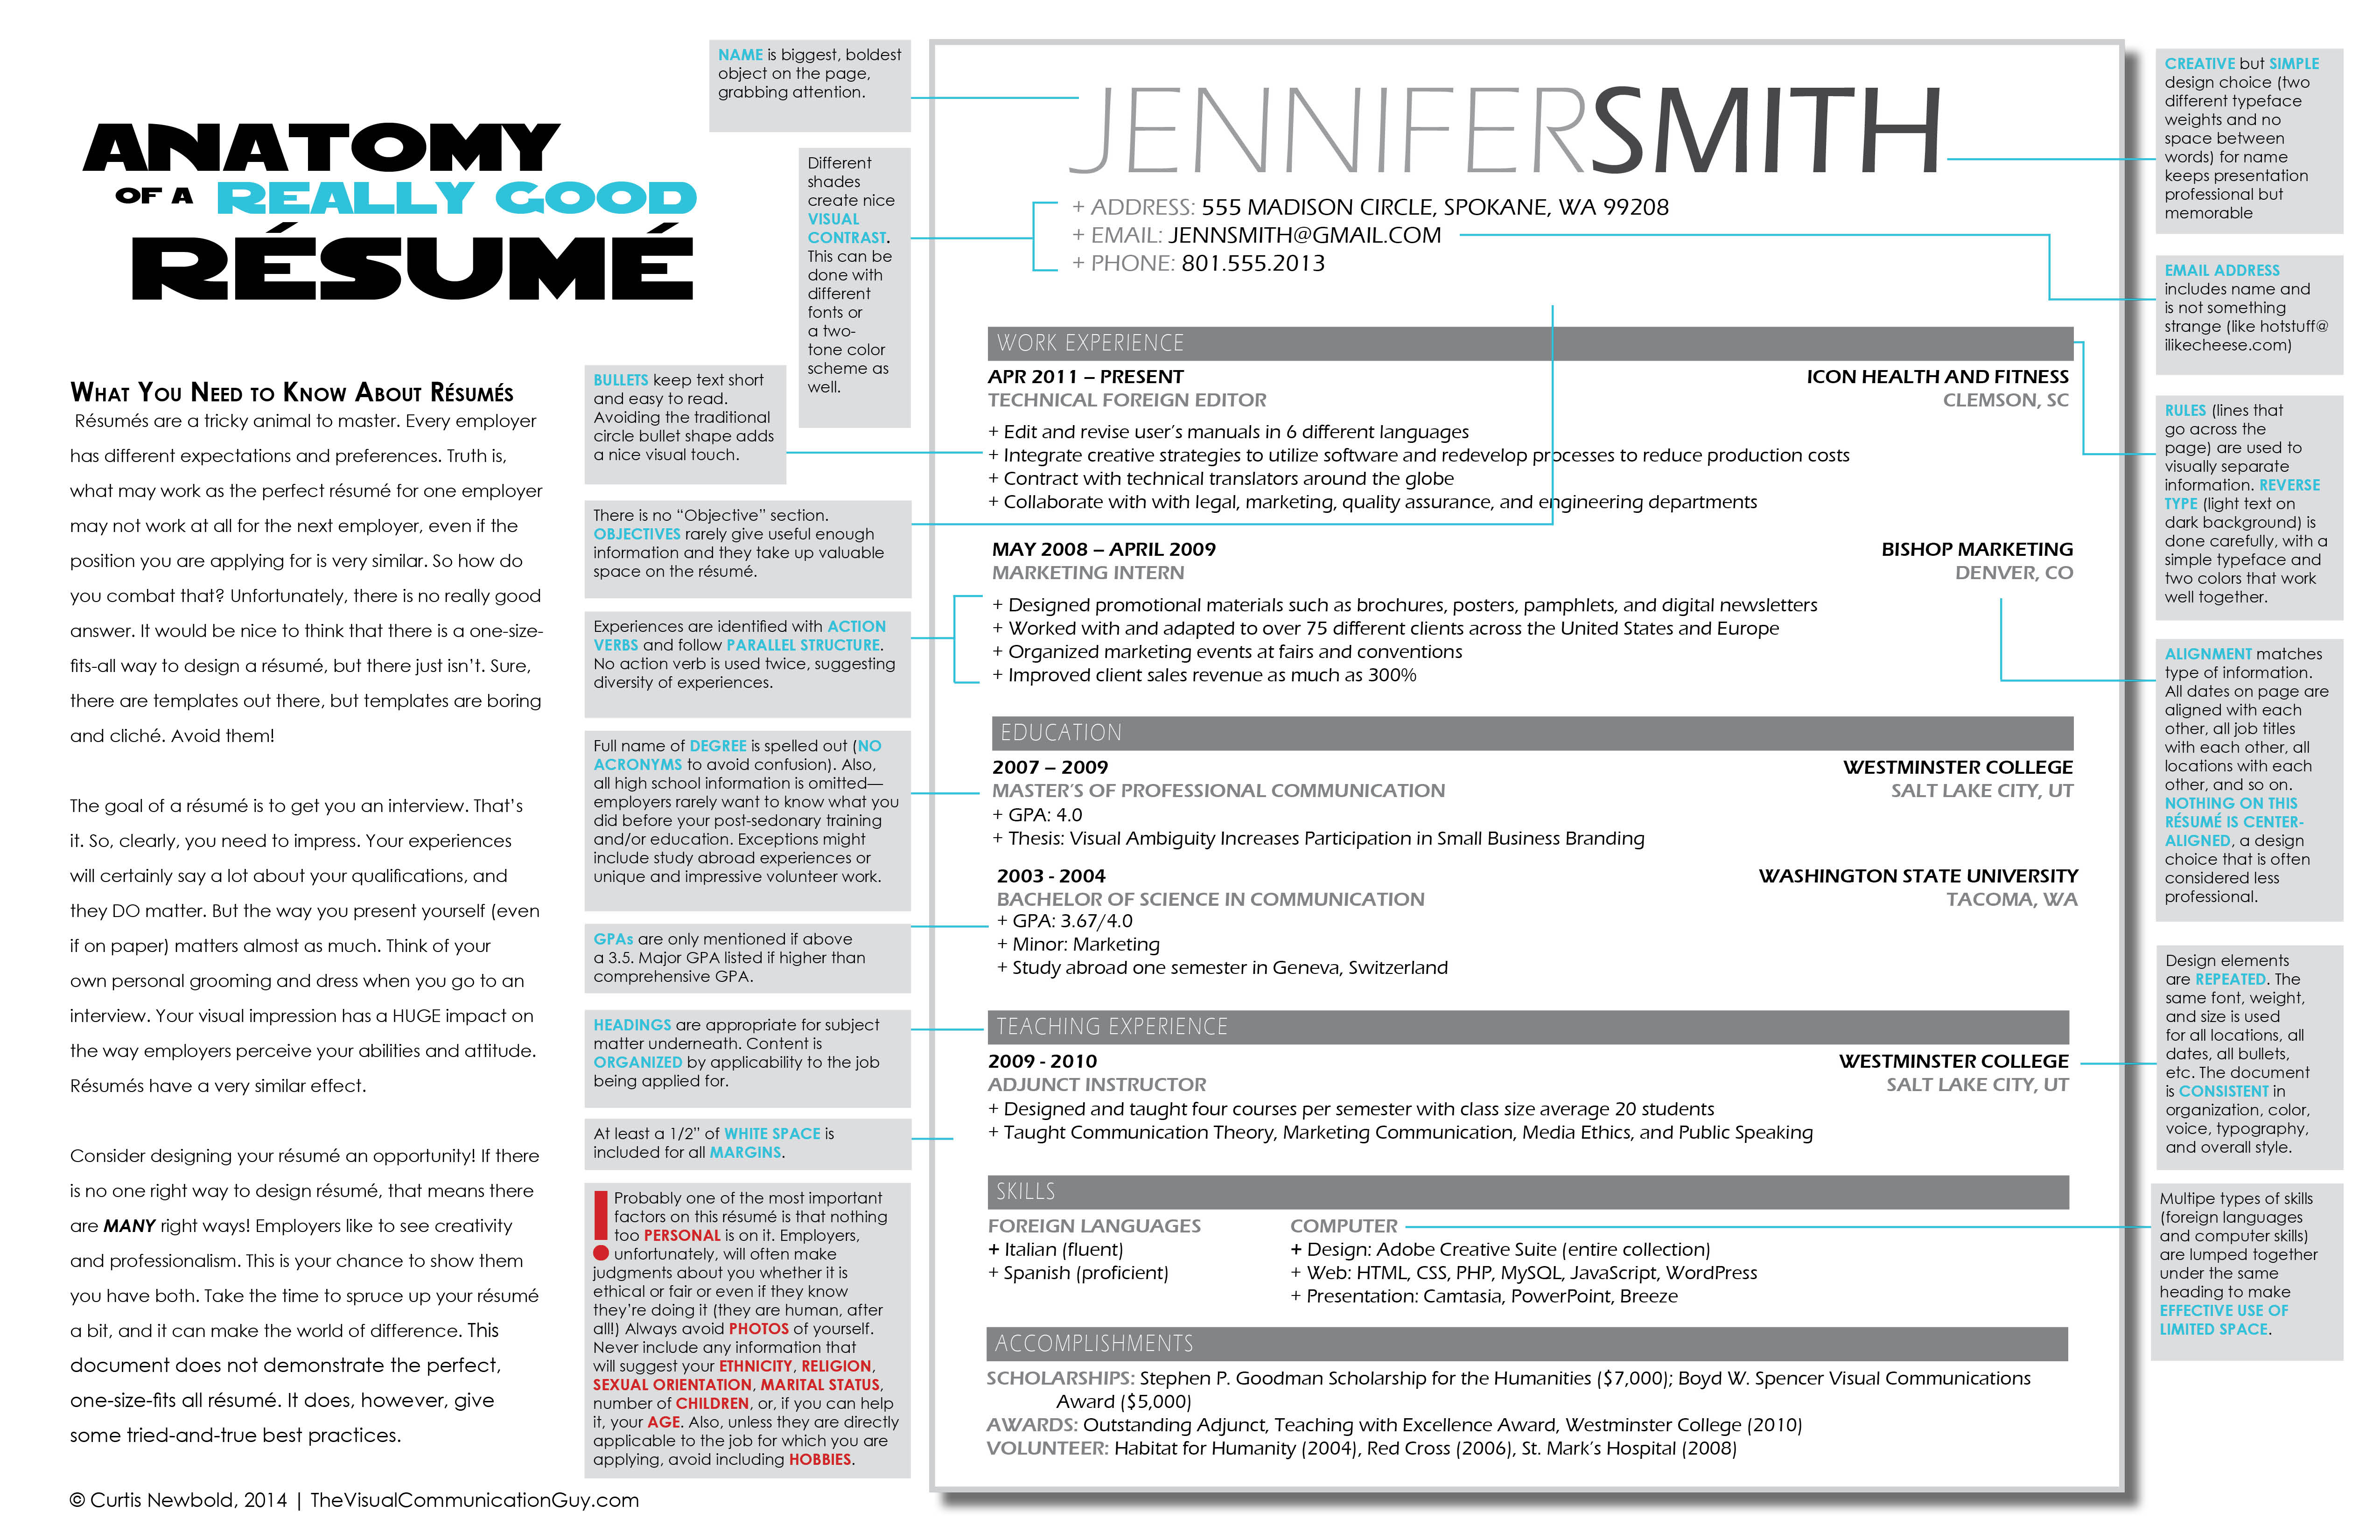 anatomy of a really good resume - Good Resume